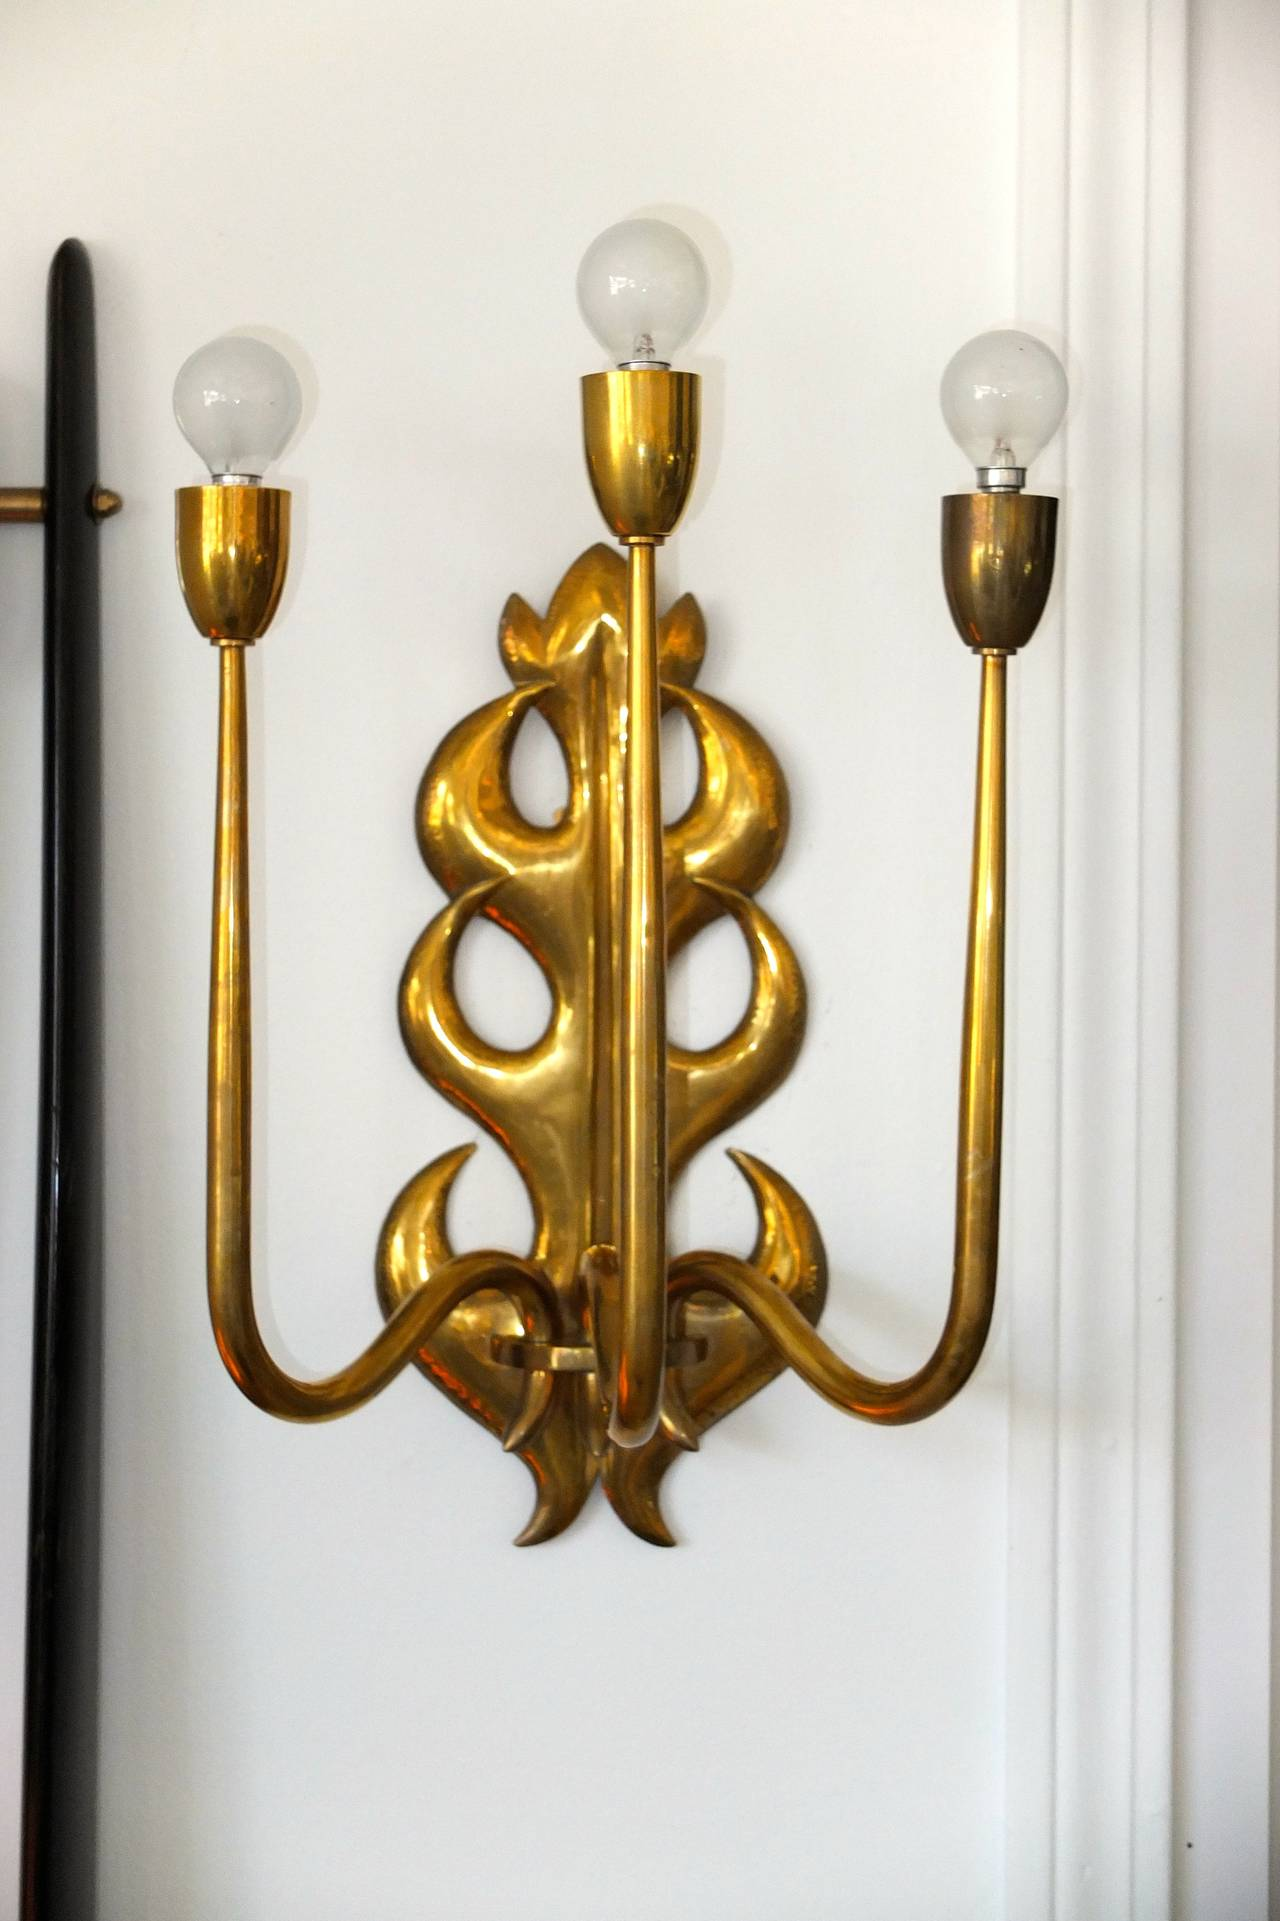 A single 1950s Italian brass three arm wall lamp in the manner of Gio Ponti and Tomaso Buzzi.